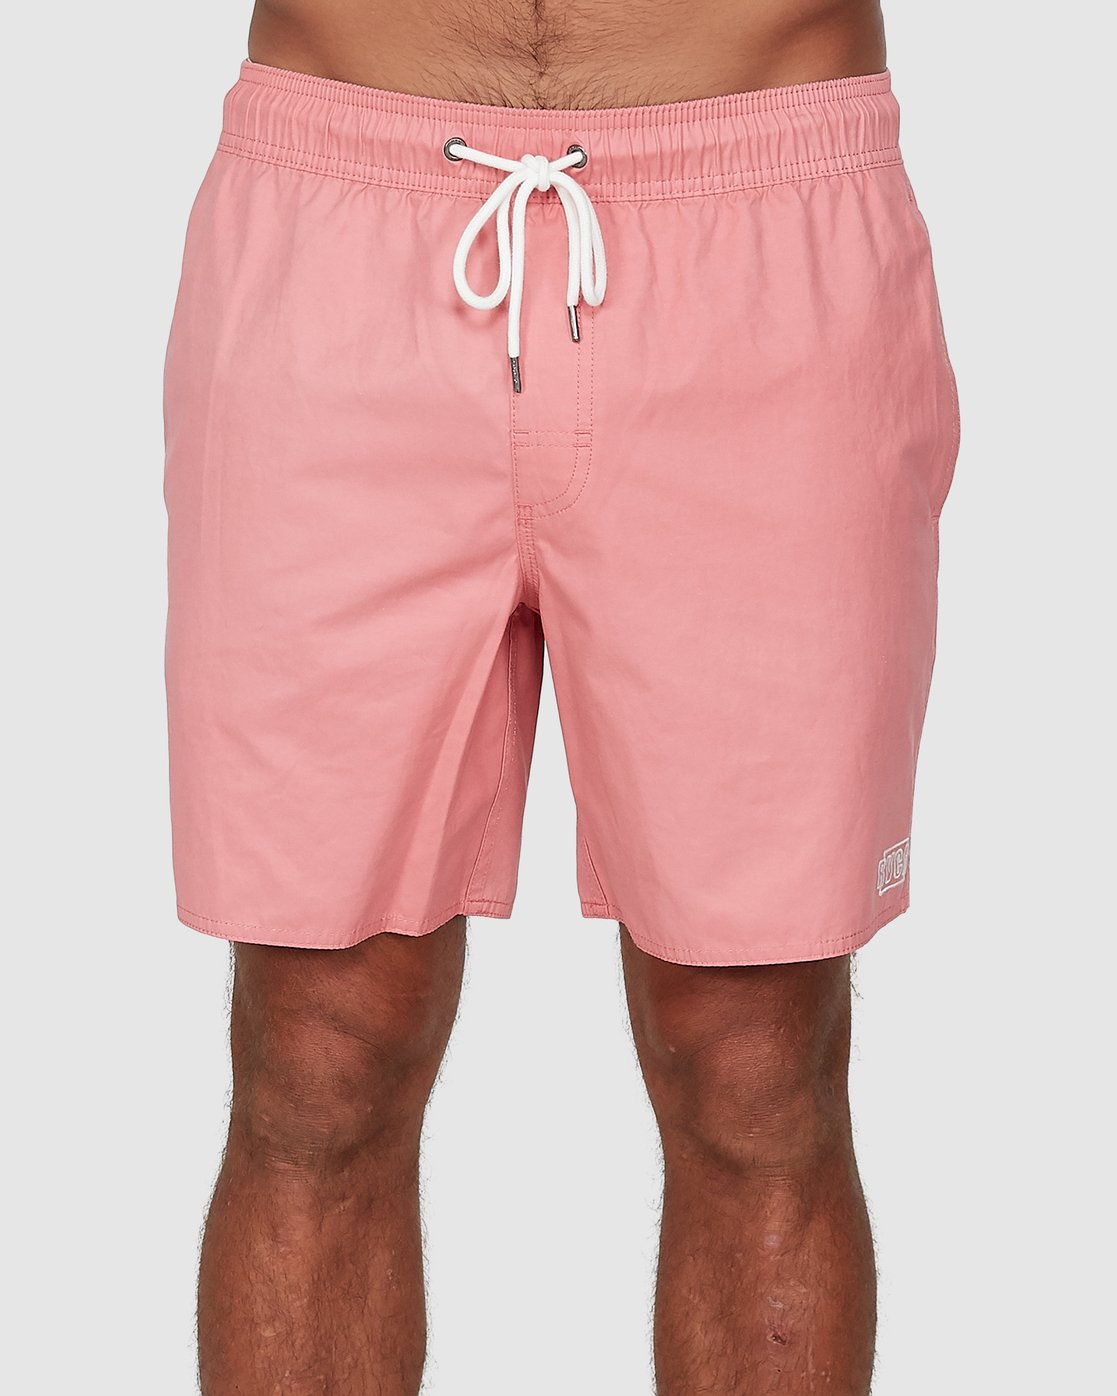 0 OPPOSITES ELASTIC 2 Pink R307401 RVCA